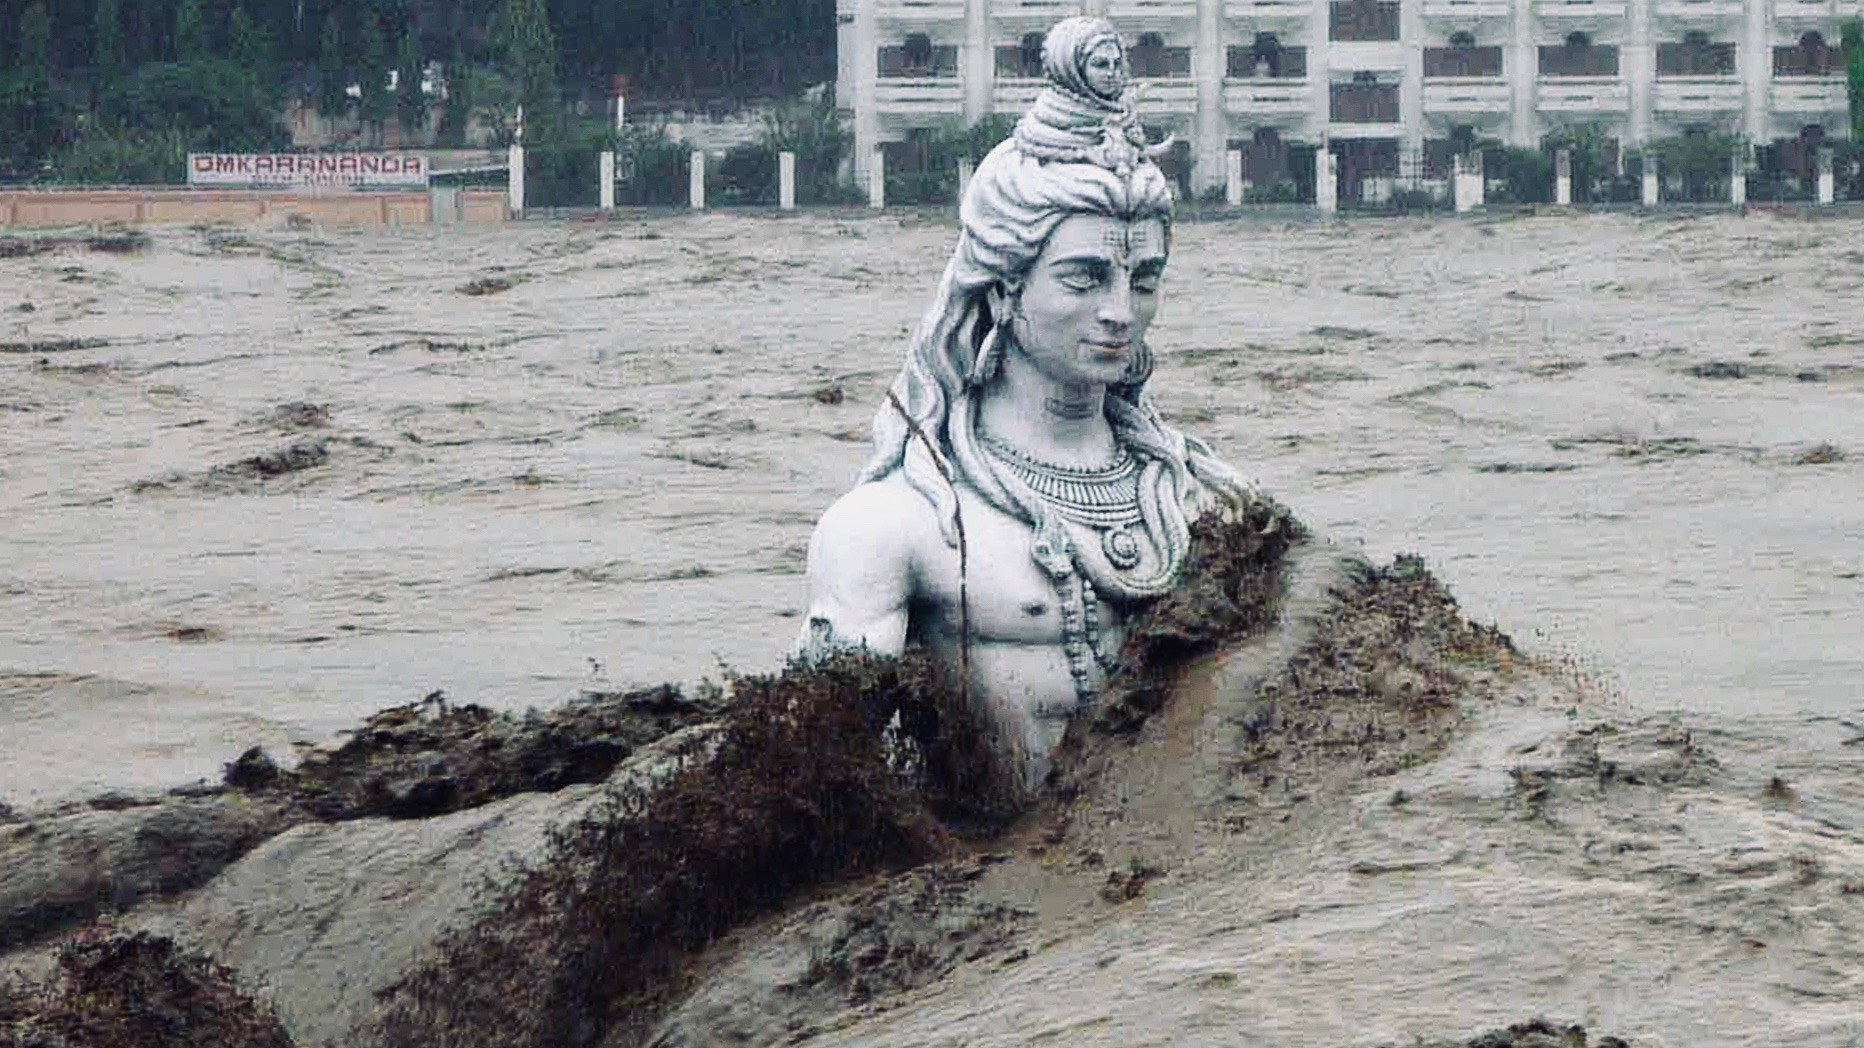 A submerged statue of the Hindu Lord Shiva stands amid the flooded waters of river Ganges.